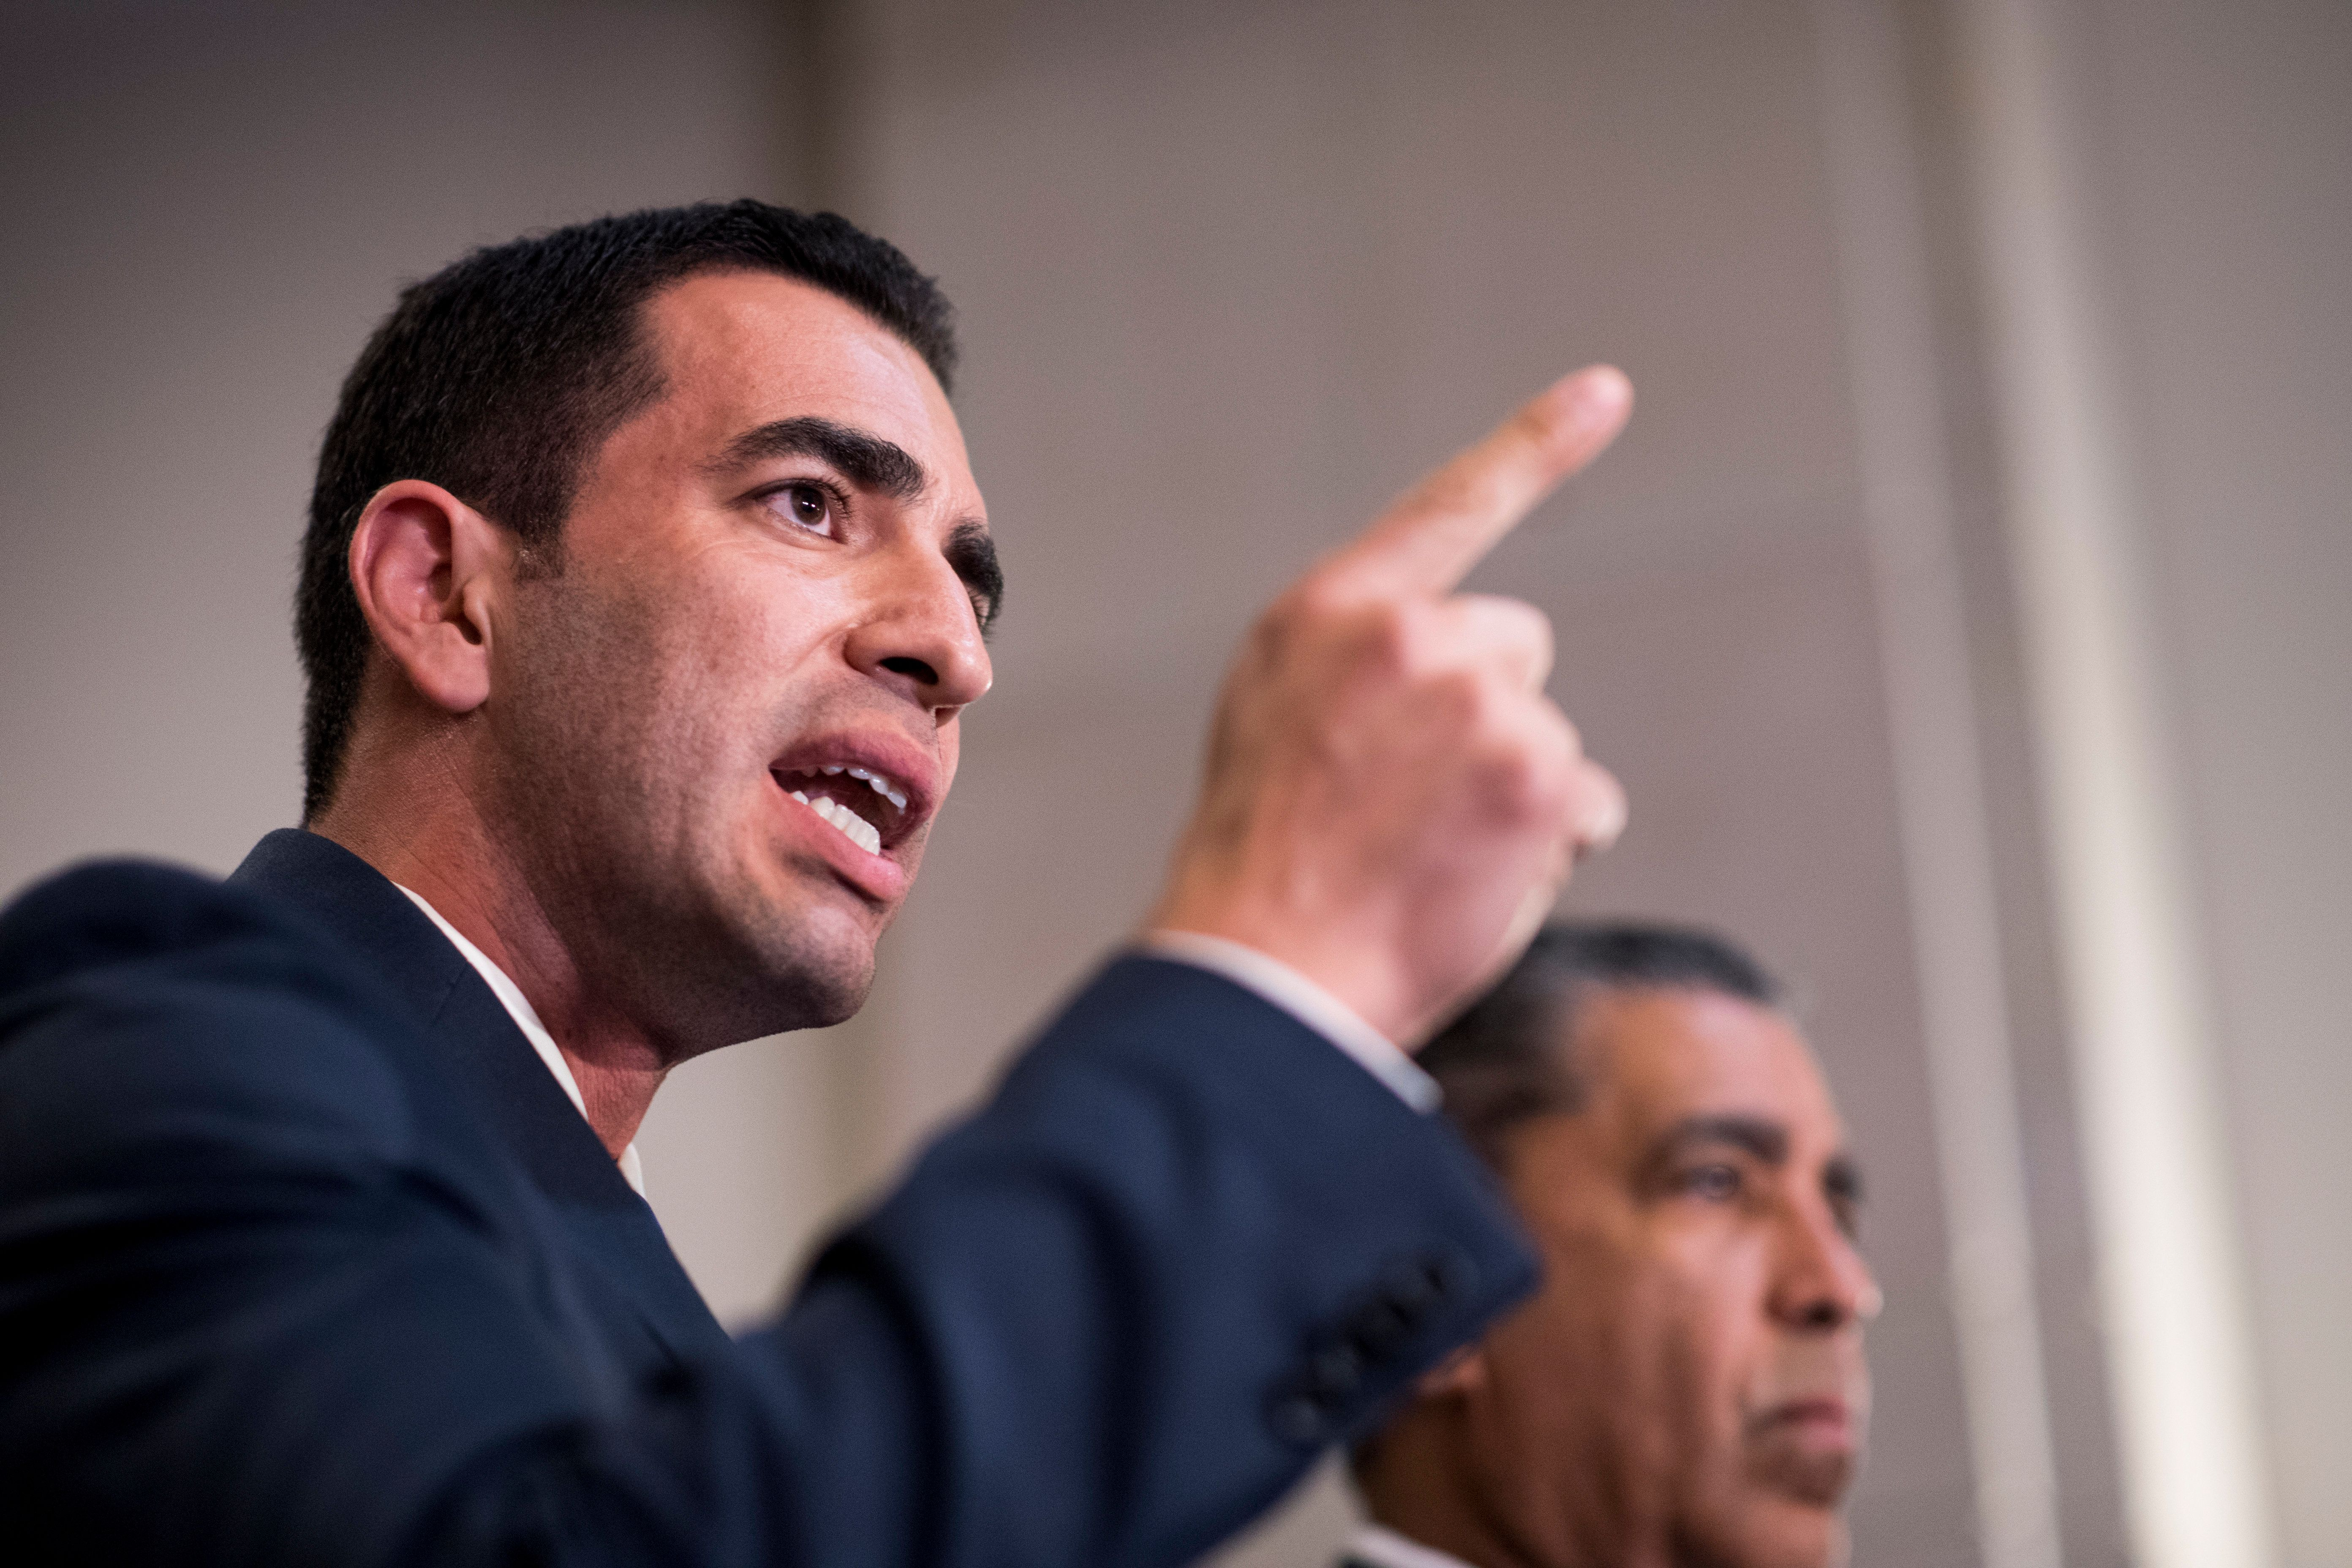 UNITED STATES - SEPTEMBER 5: From left, Rep. Ruben Kihuen, D-Nev.,  and Rep. Adriano Espaillat, D-N.Y., speak in the Capitol with other House Democrats in solidarity with DREAMers and to speak out against President Trumps decision to end DACA on Tuesday, Sept. 5, 2017. Reps. Kihuen and Espaillat are the first formerly undocumented Members to serve in Congress. (Photo By Bill Clark/CQ Roll Call)